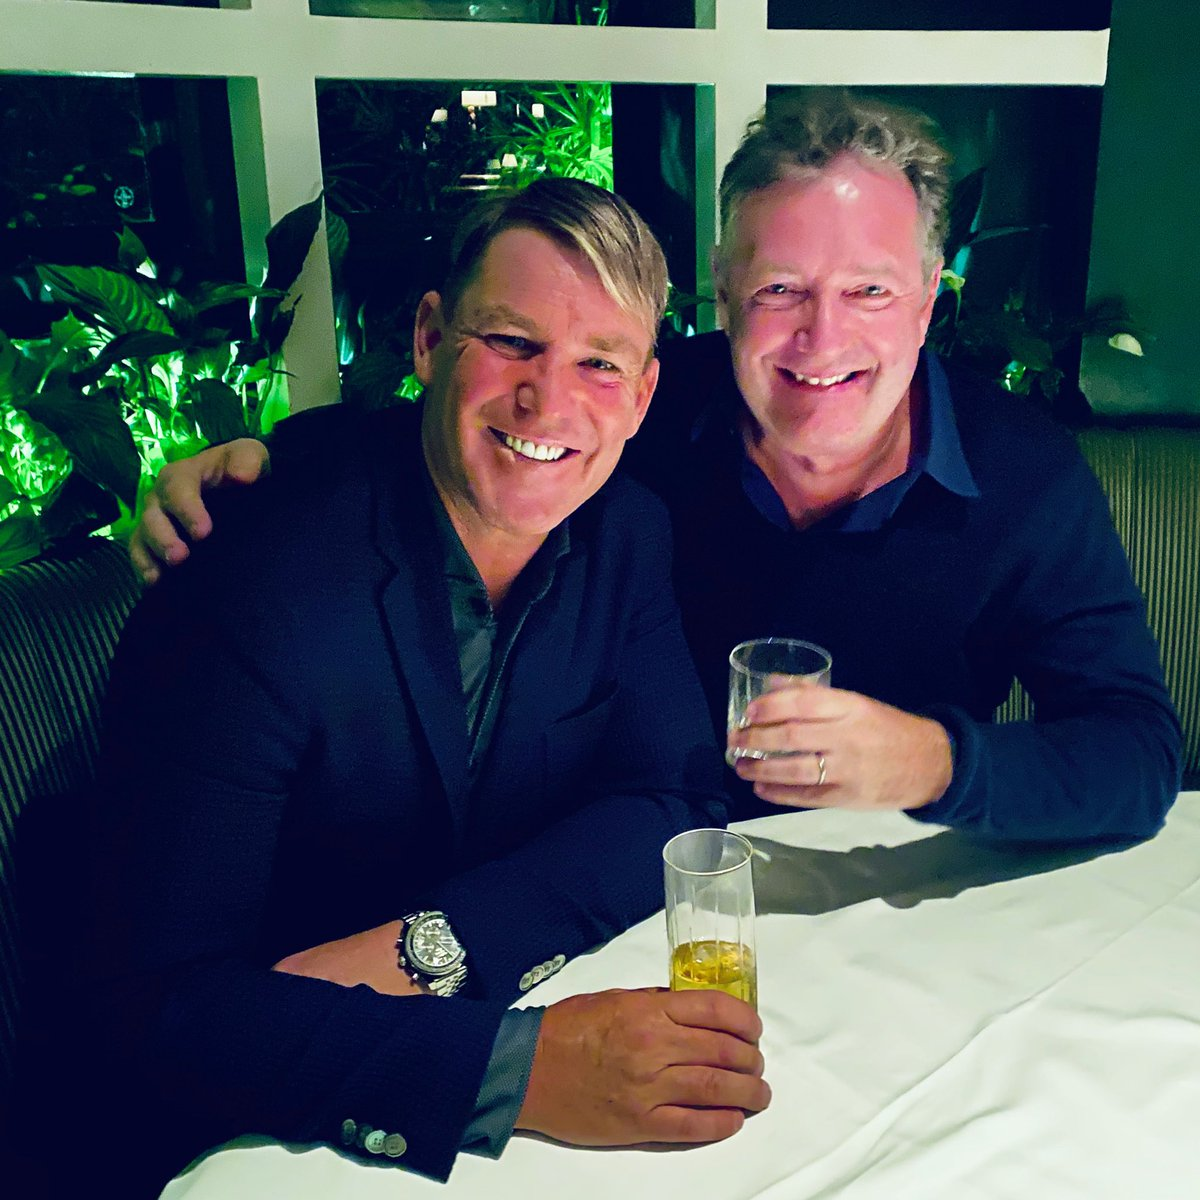 Down but not out in Beverly Hills... great to catch up with my old mate @ShaneWarne in LA tonight. @BevHillsHotel #PoloLounge 🏏